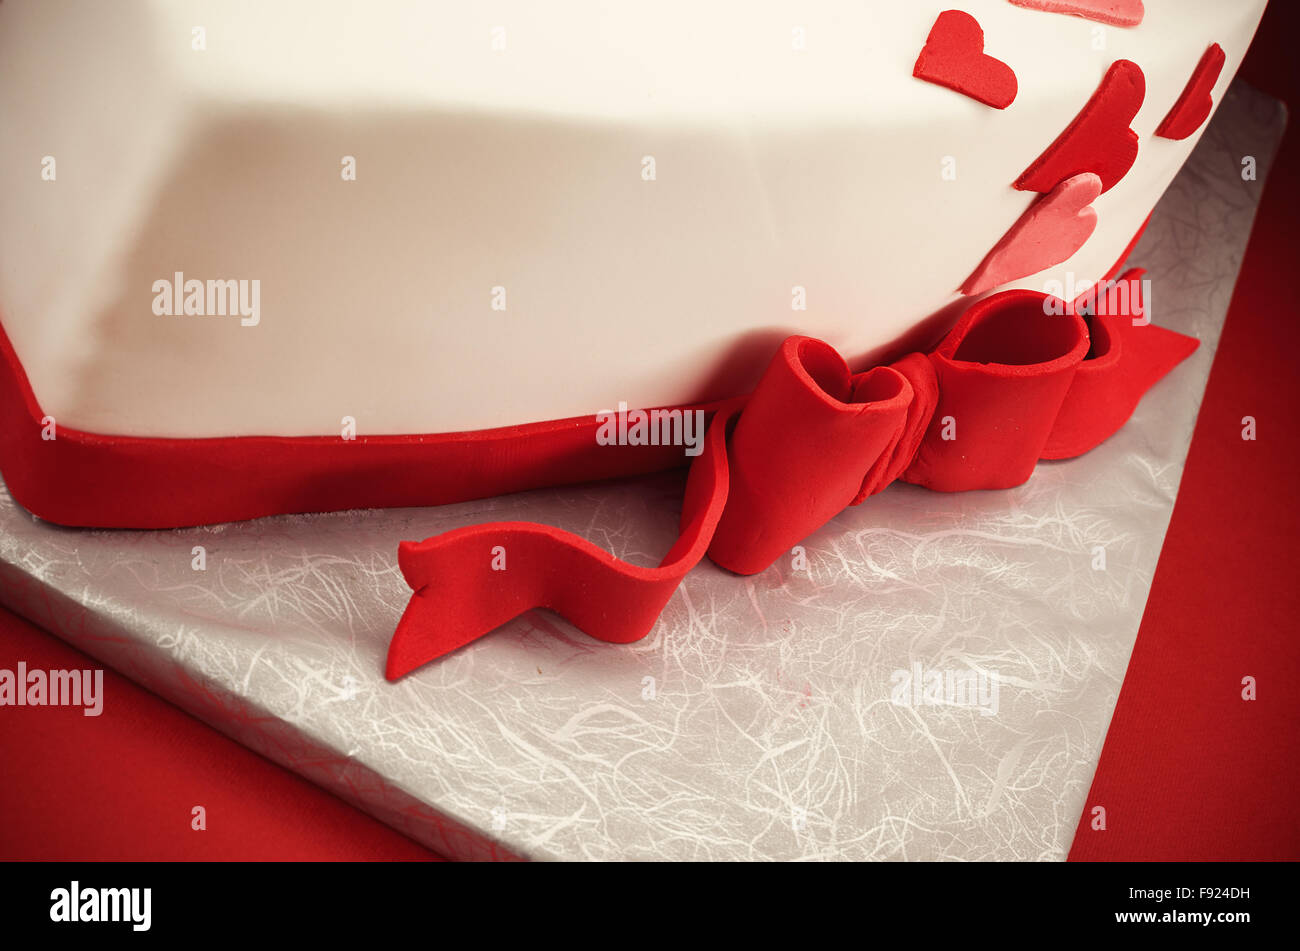 Details of a cake in shape of heart. - Stock Image